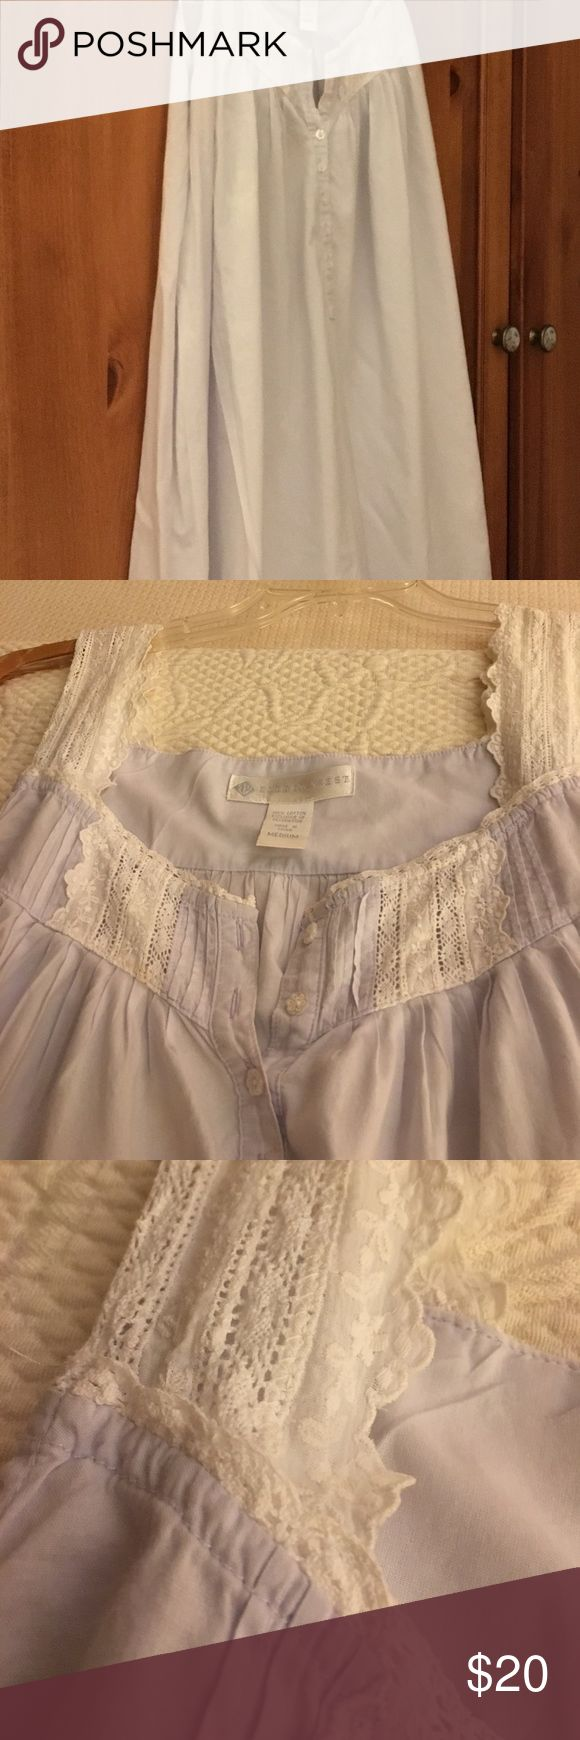 Eileen West long cotton nightgown size L Very pale blue with lace trim at neckline and shoulder straps. Eileen West Intimates & Sleepwear Chemises & Slips